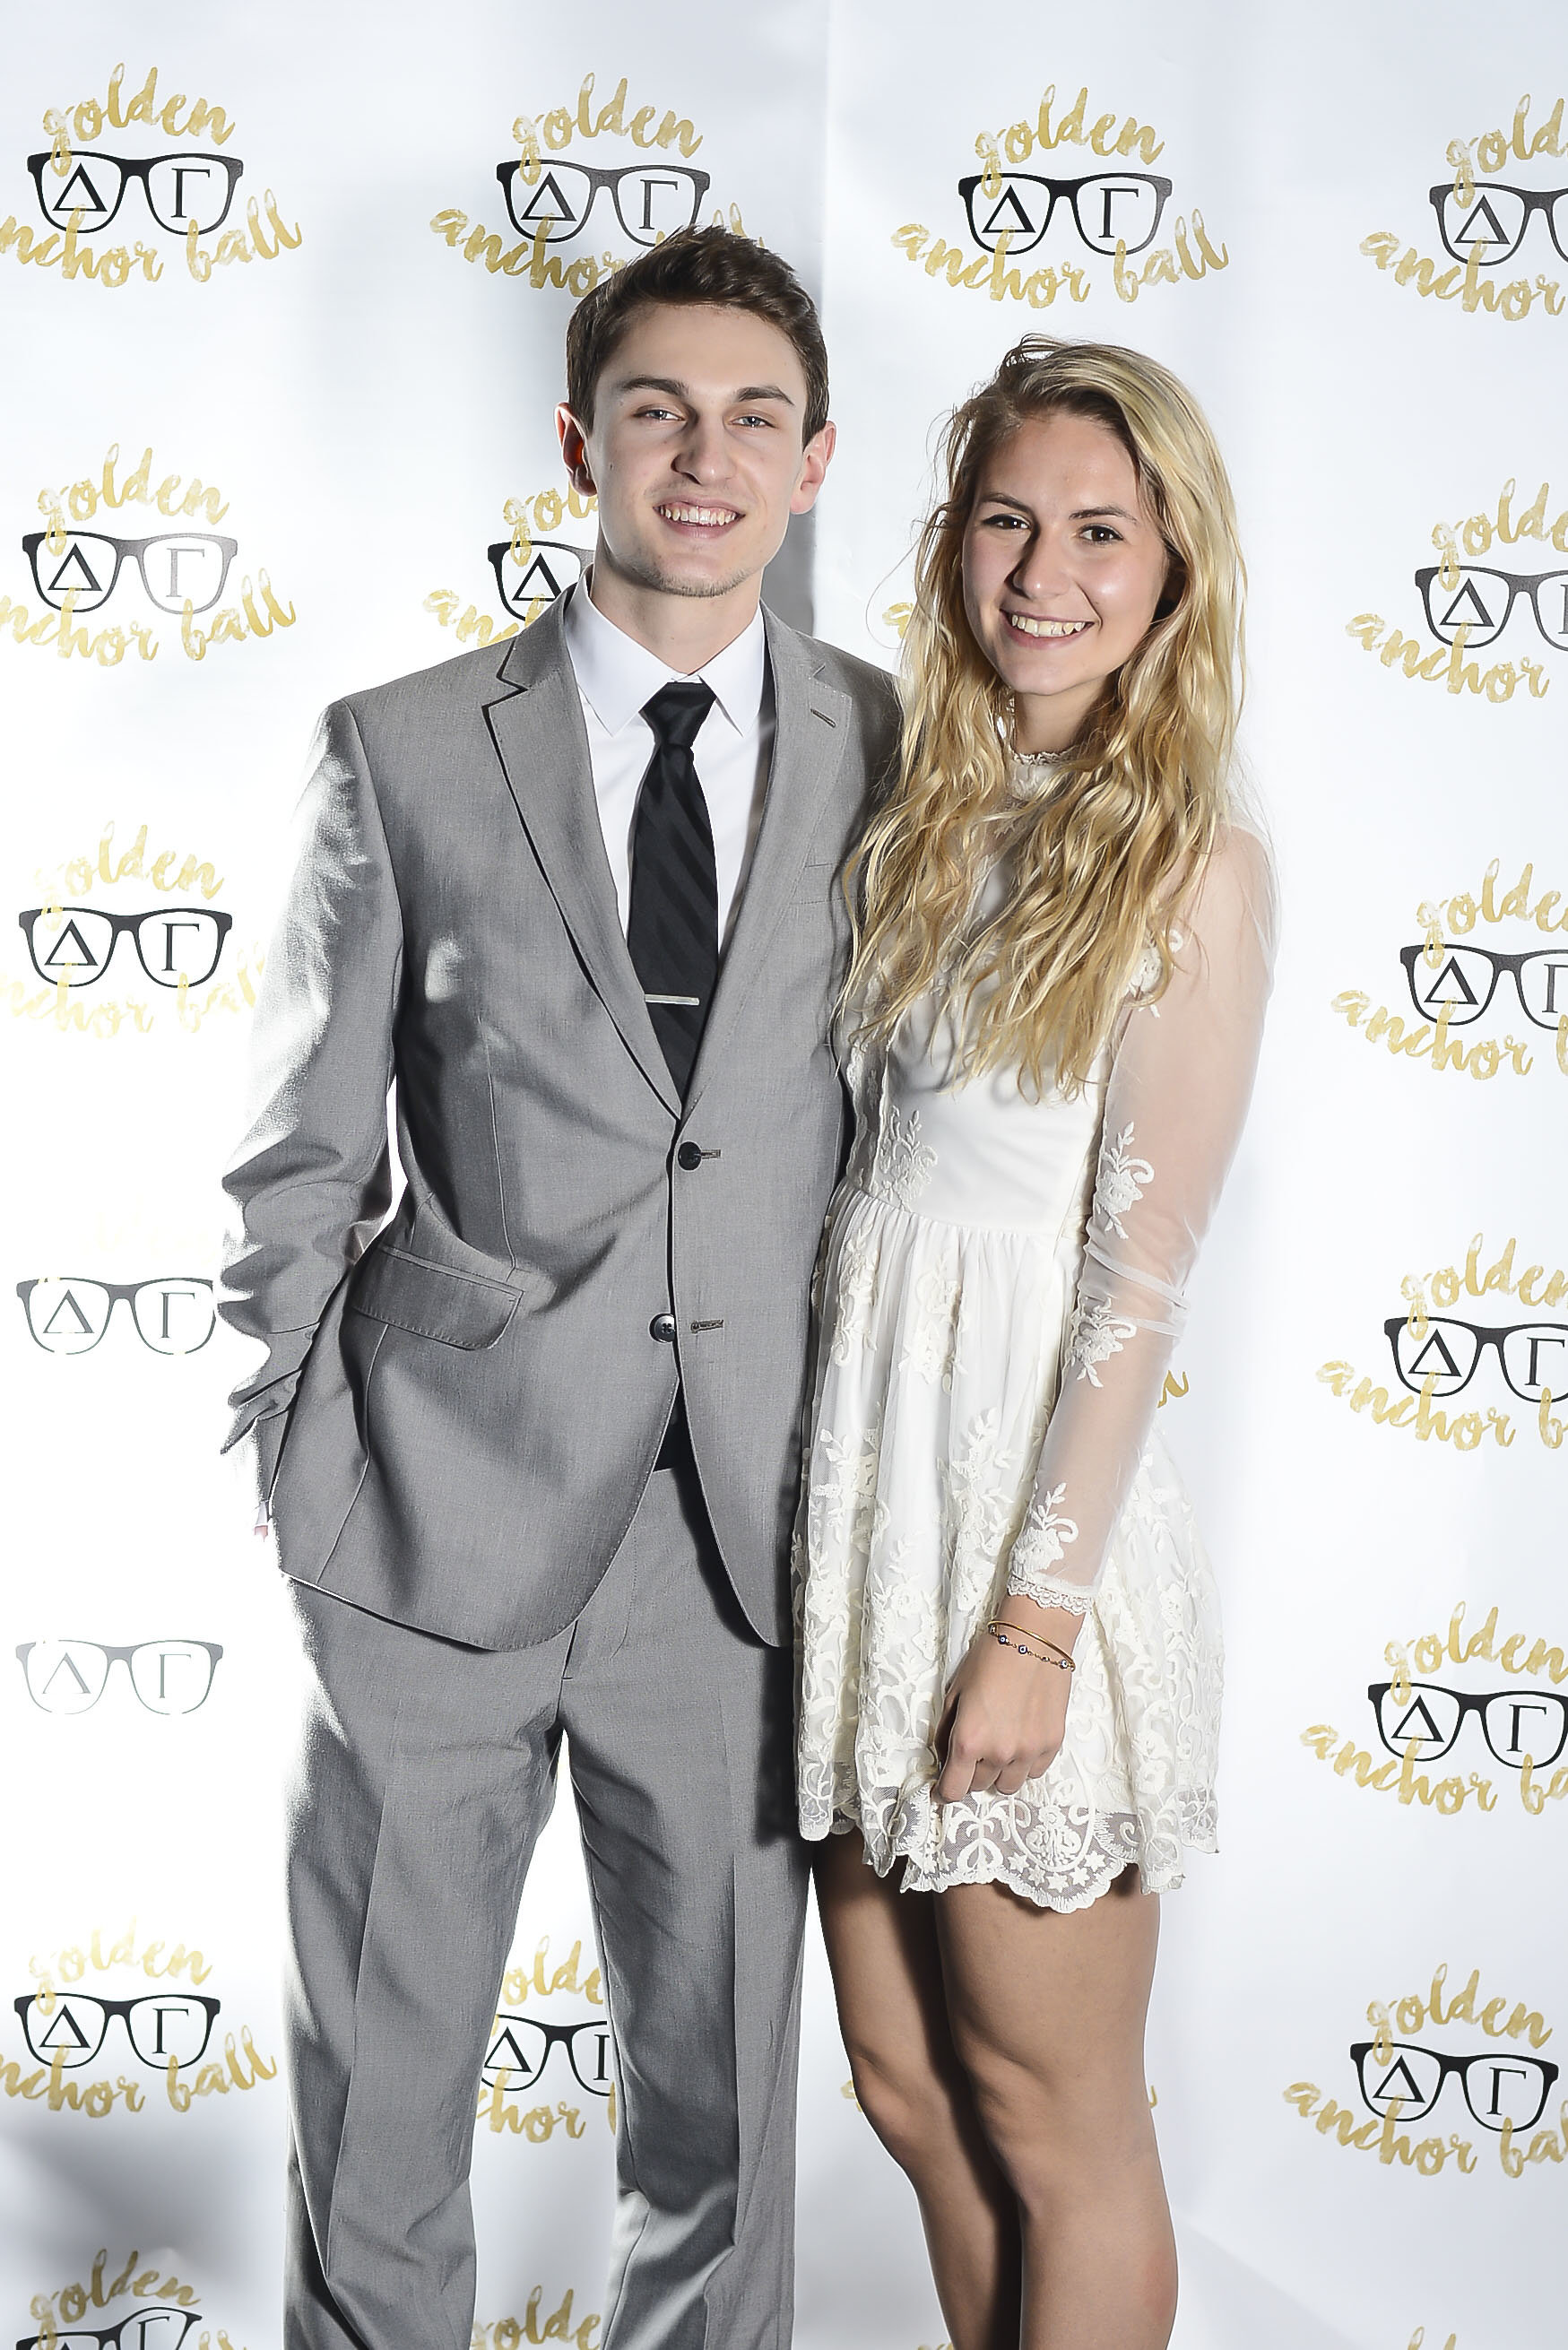 Golden Anchor Ball